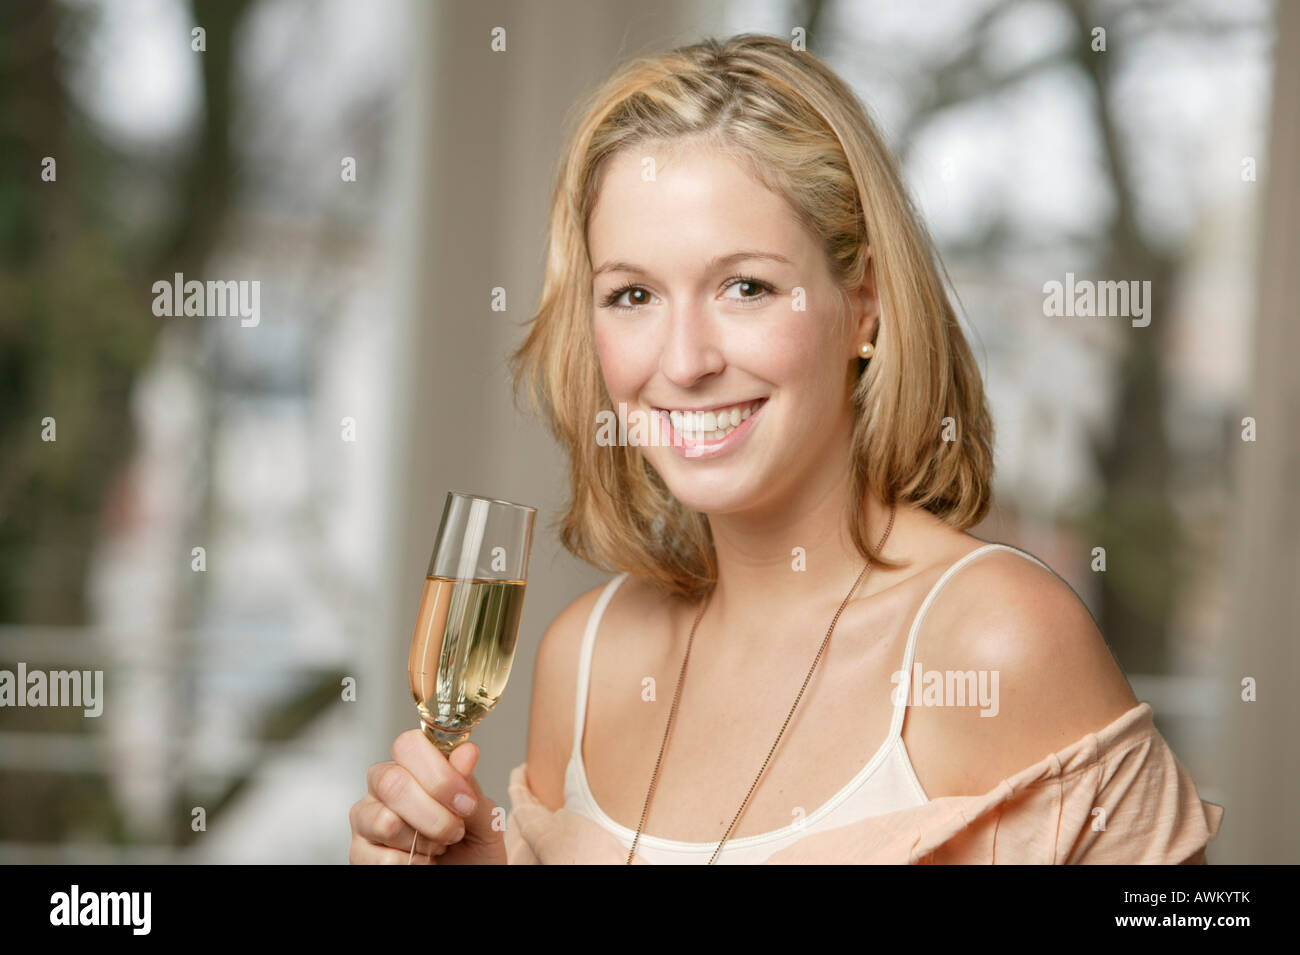 Smiling young blonde woman with champange glass - Stock Image